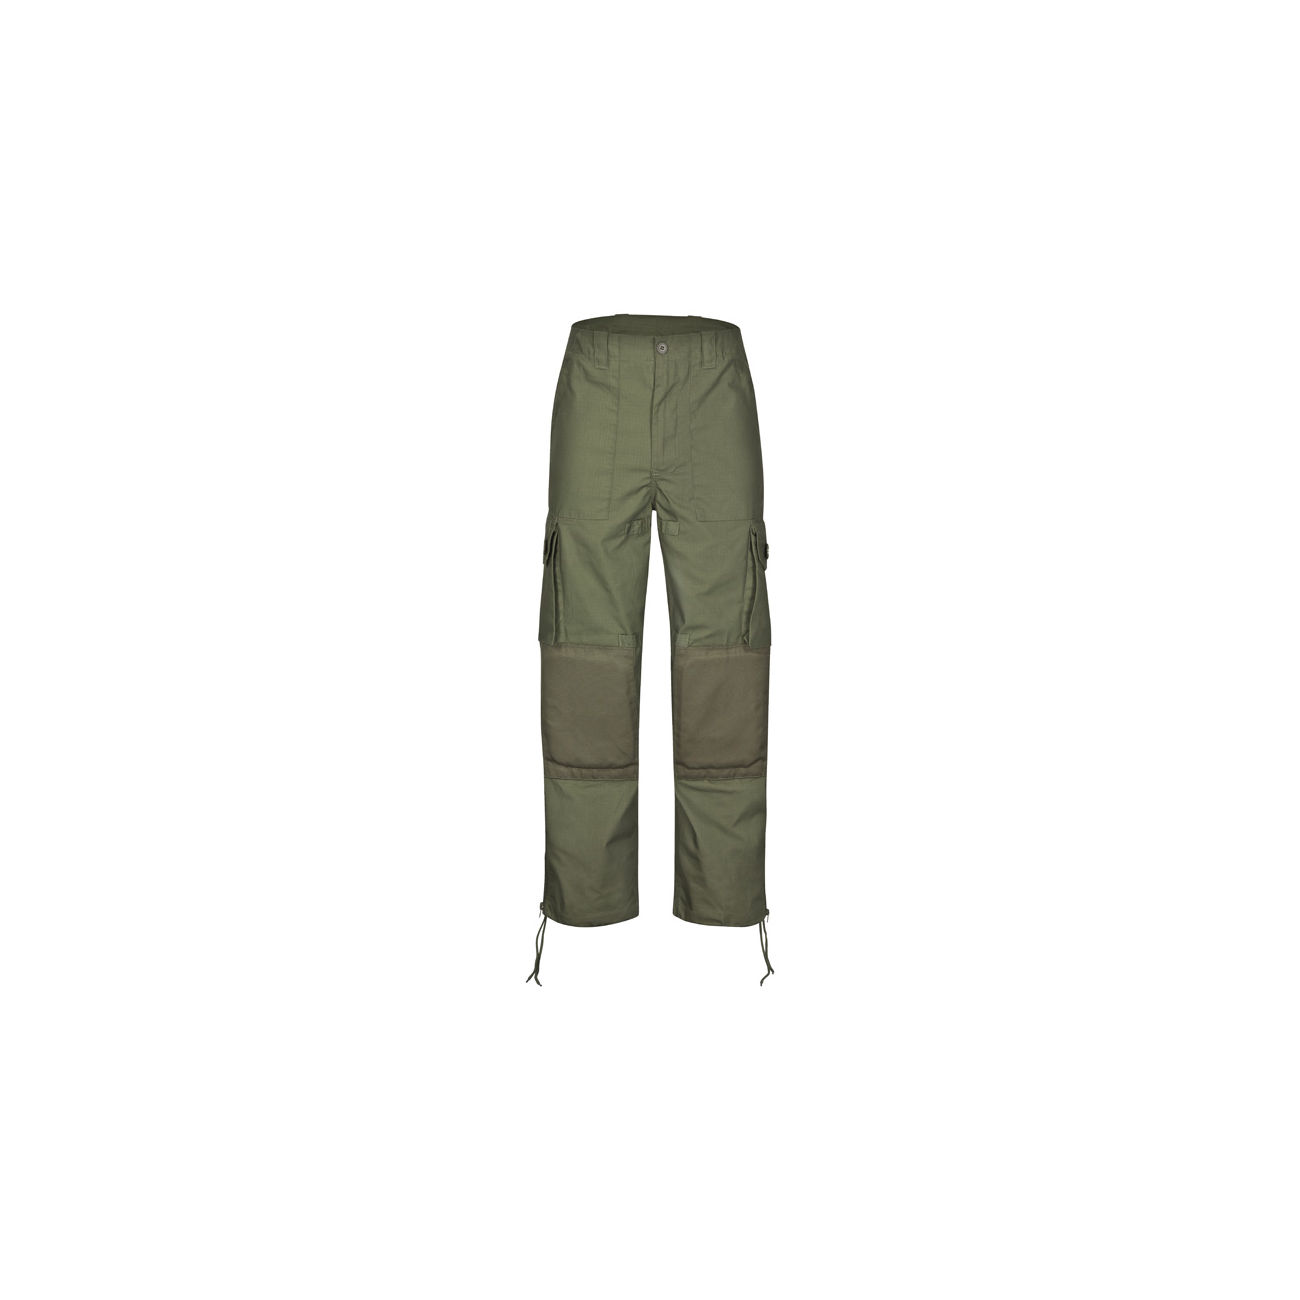 Kommandohose Light Weight Mil-Tec, oliv 0